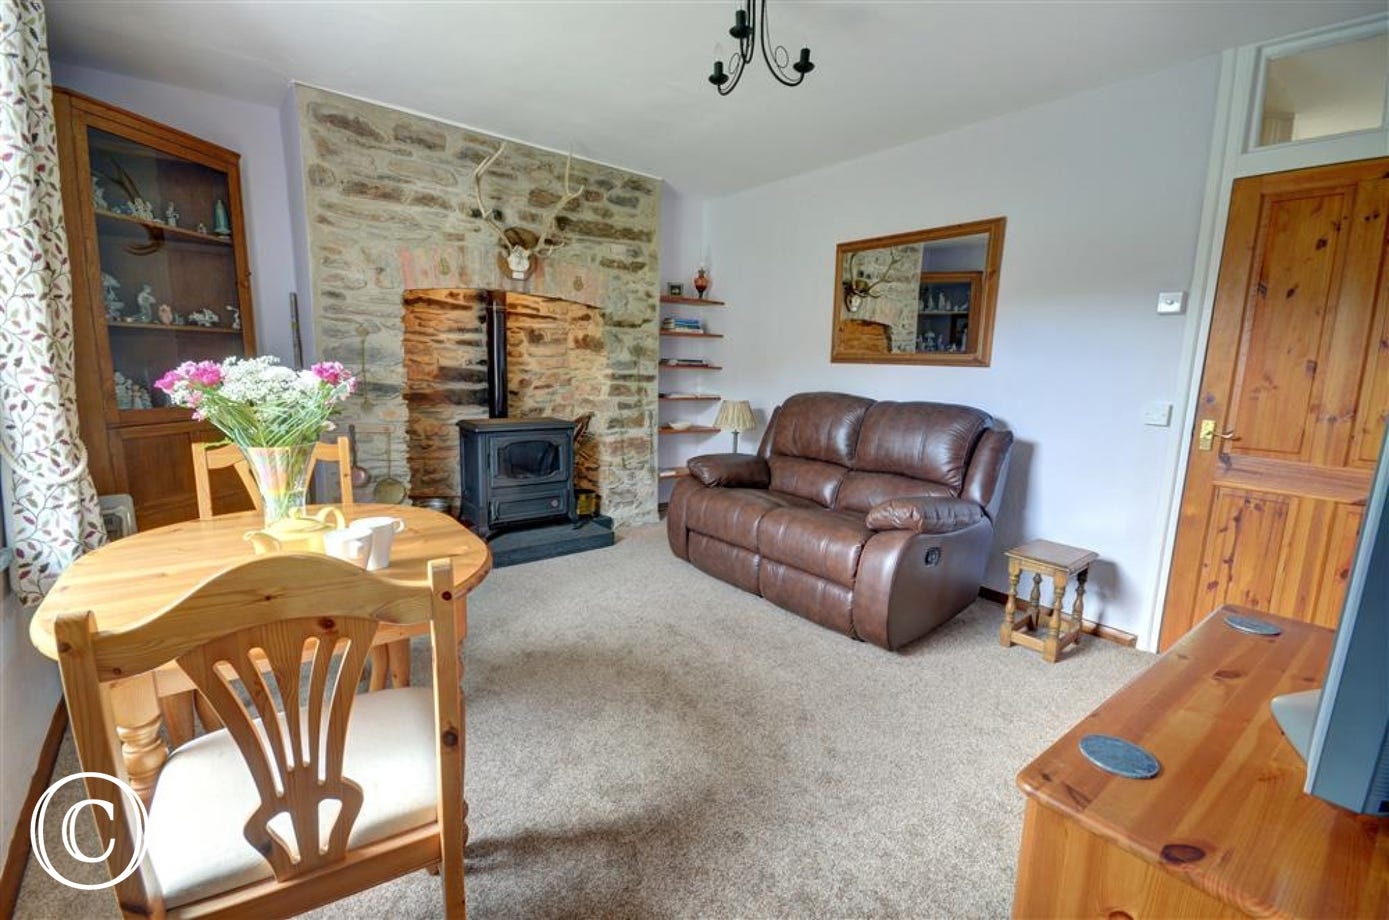 Comfortable reclining settee and an oil stove fire in the stone fireplace for those cooler evenings